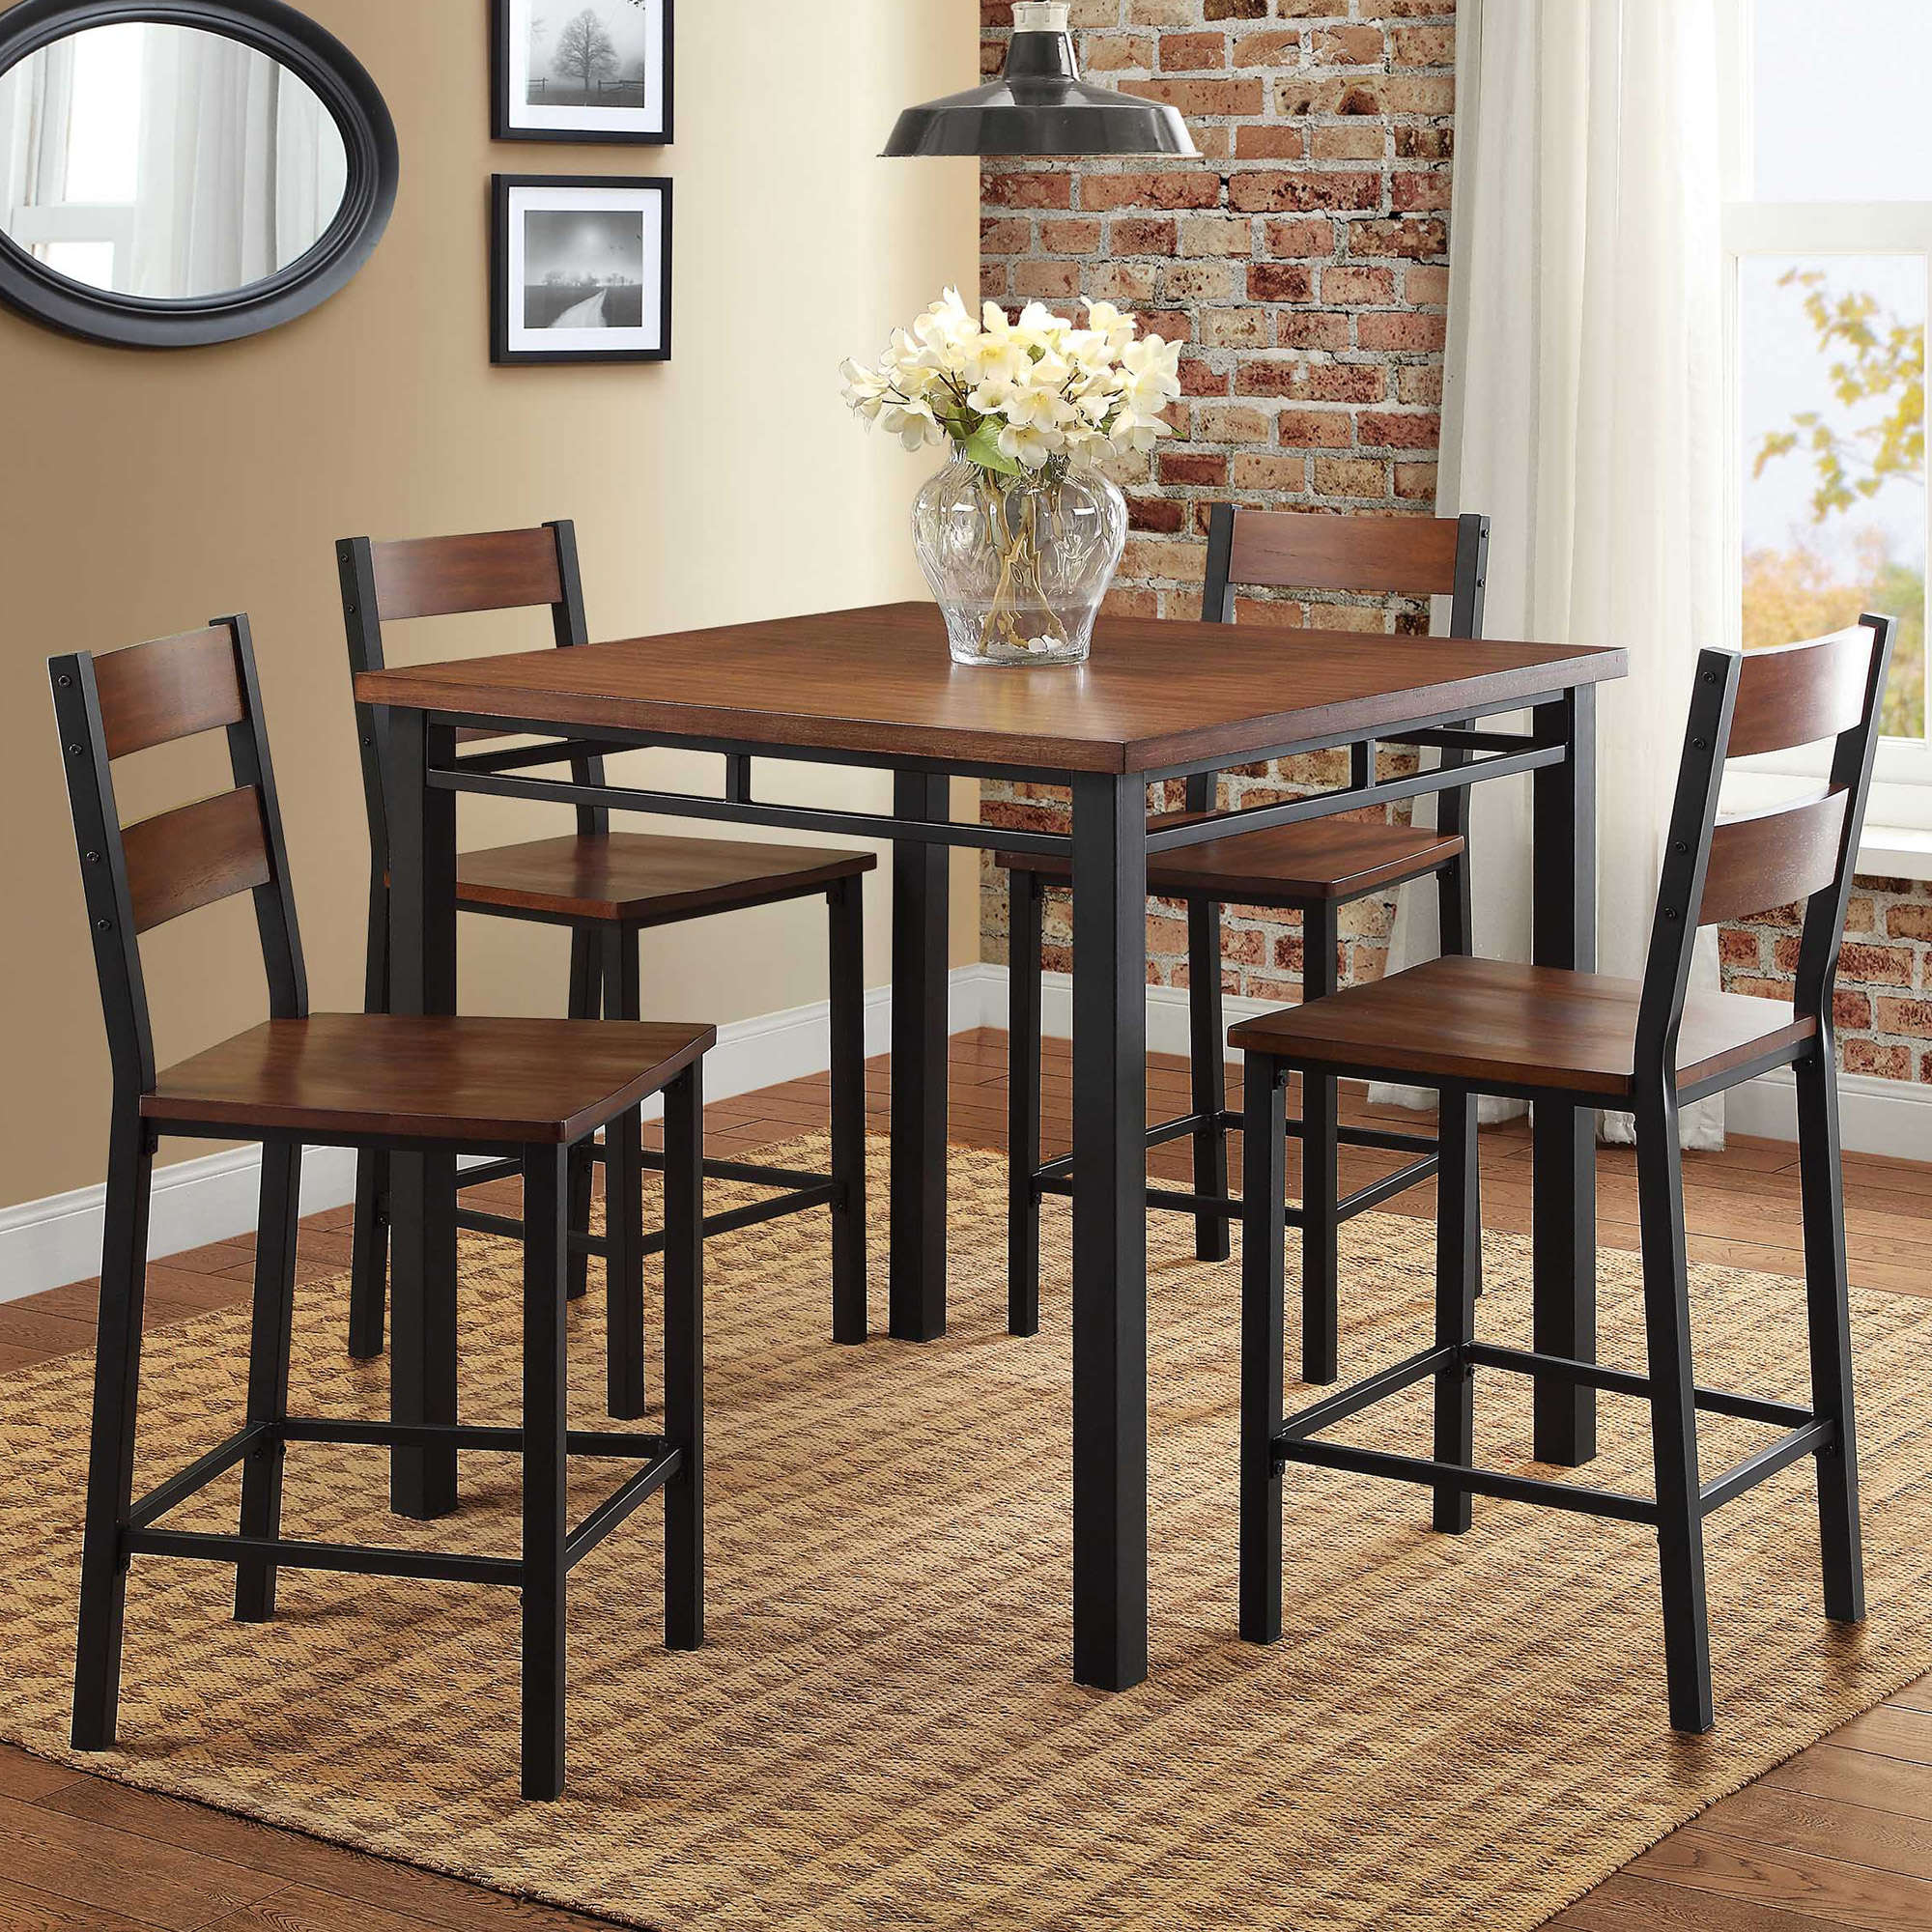 Counter Height Dining Room Table Boasting A Shapely Silhouette The Gianna 5 Piece Counter